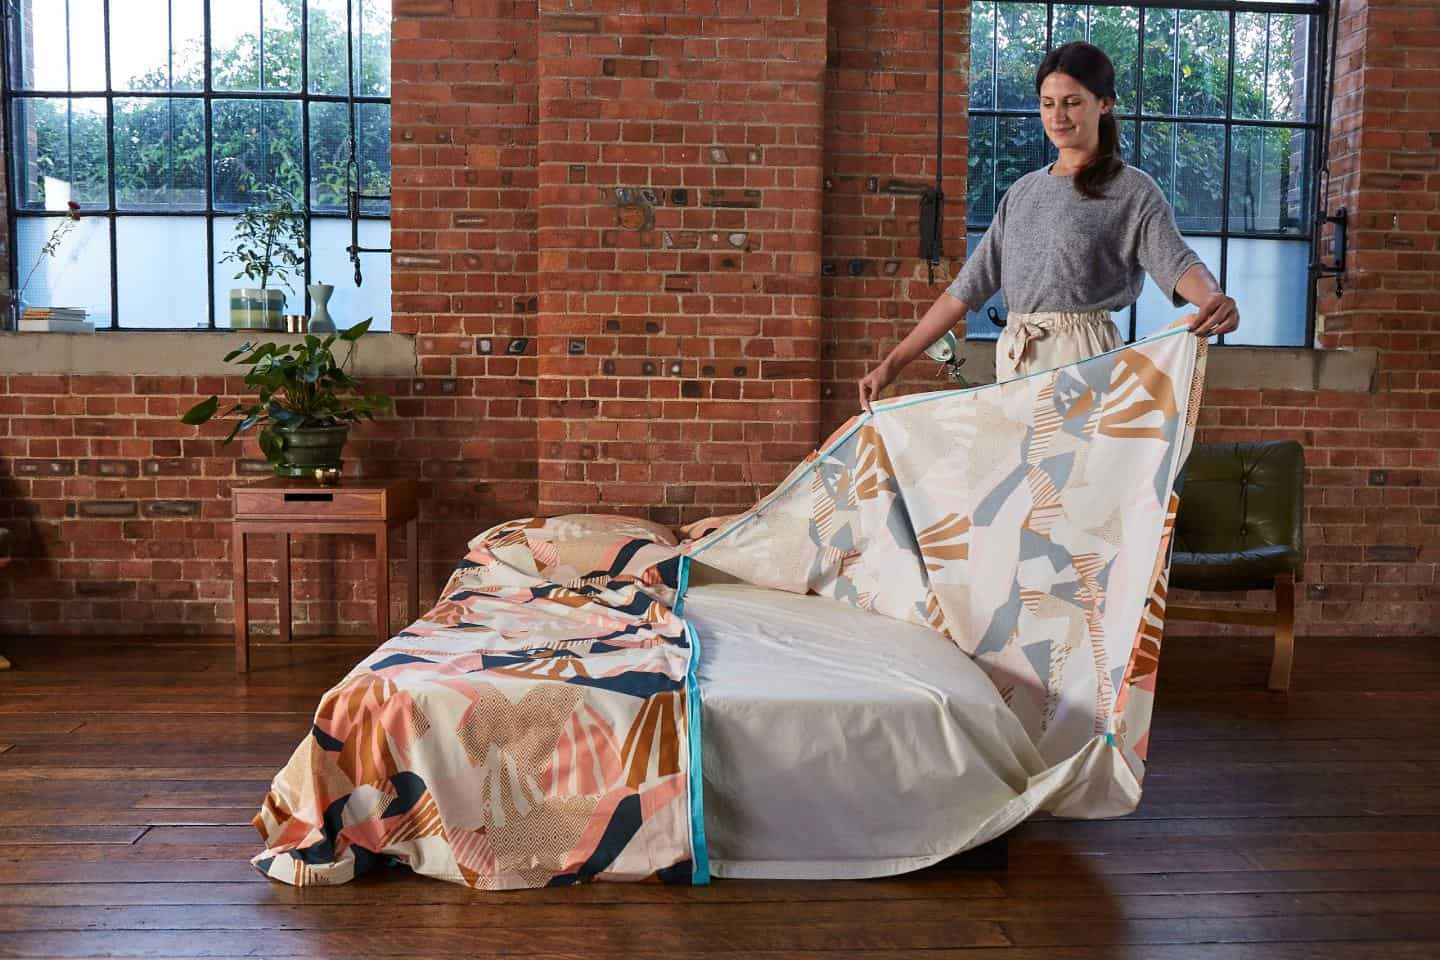 Koa revolutionary duvet cover. A woman opens the duvet cover by unzipping the central zip. The easy way to change a duvet cover